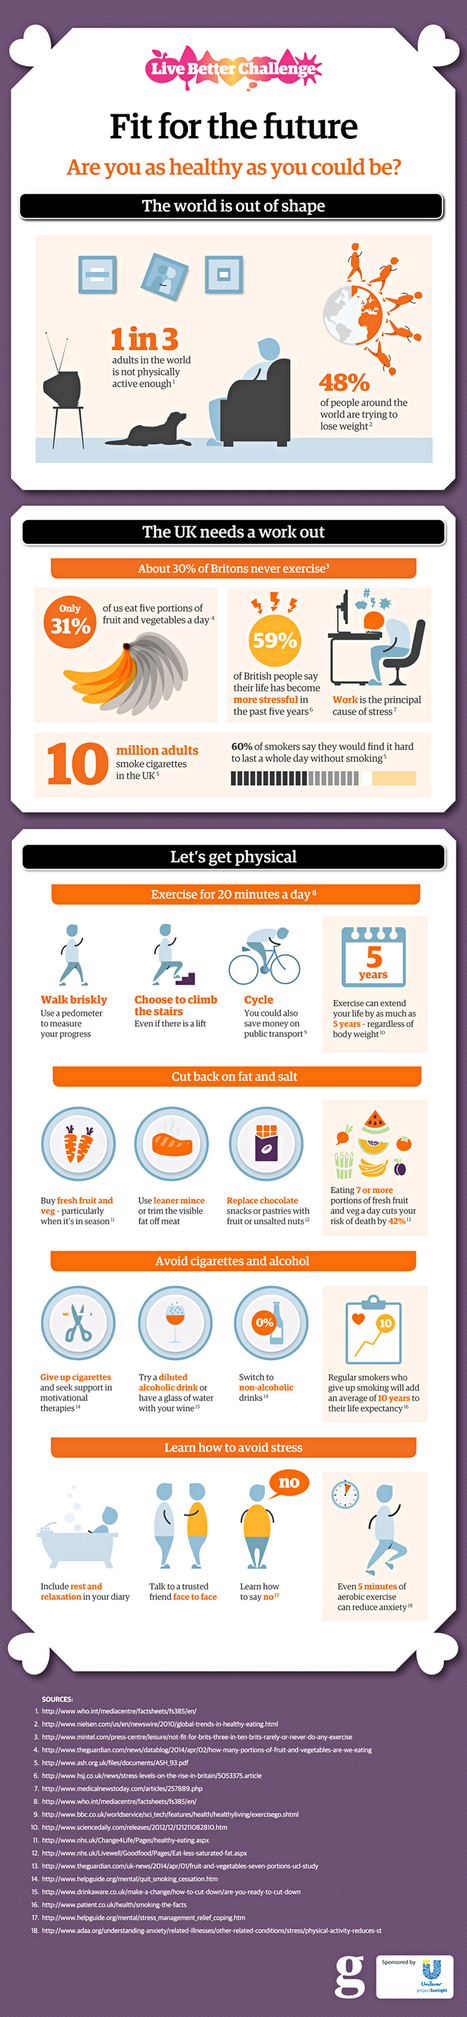 Are you fit for the future? - infographic | Healthy Living | Scoop.it